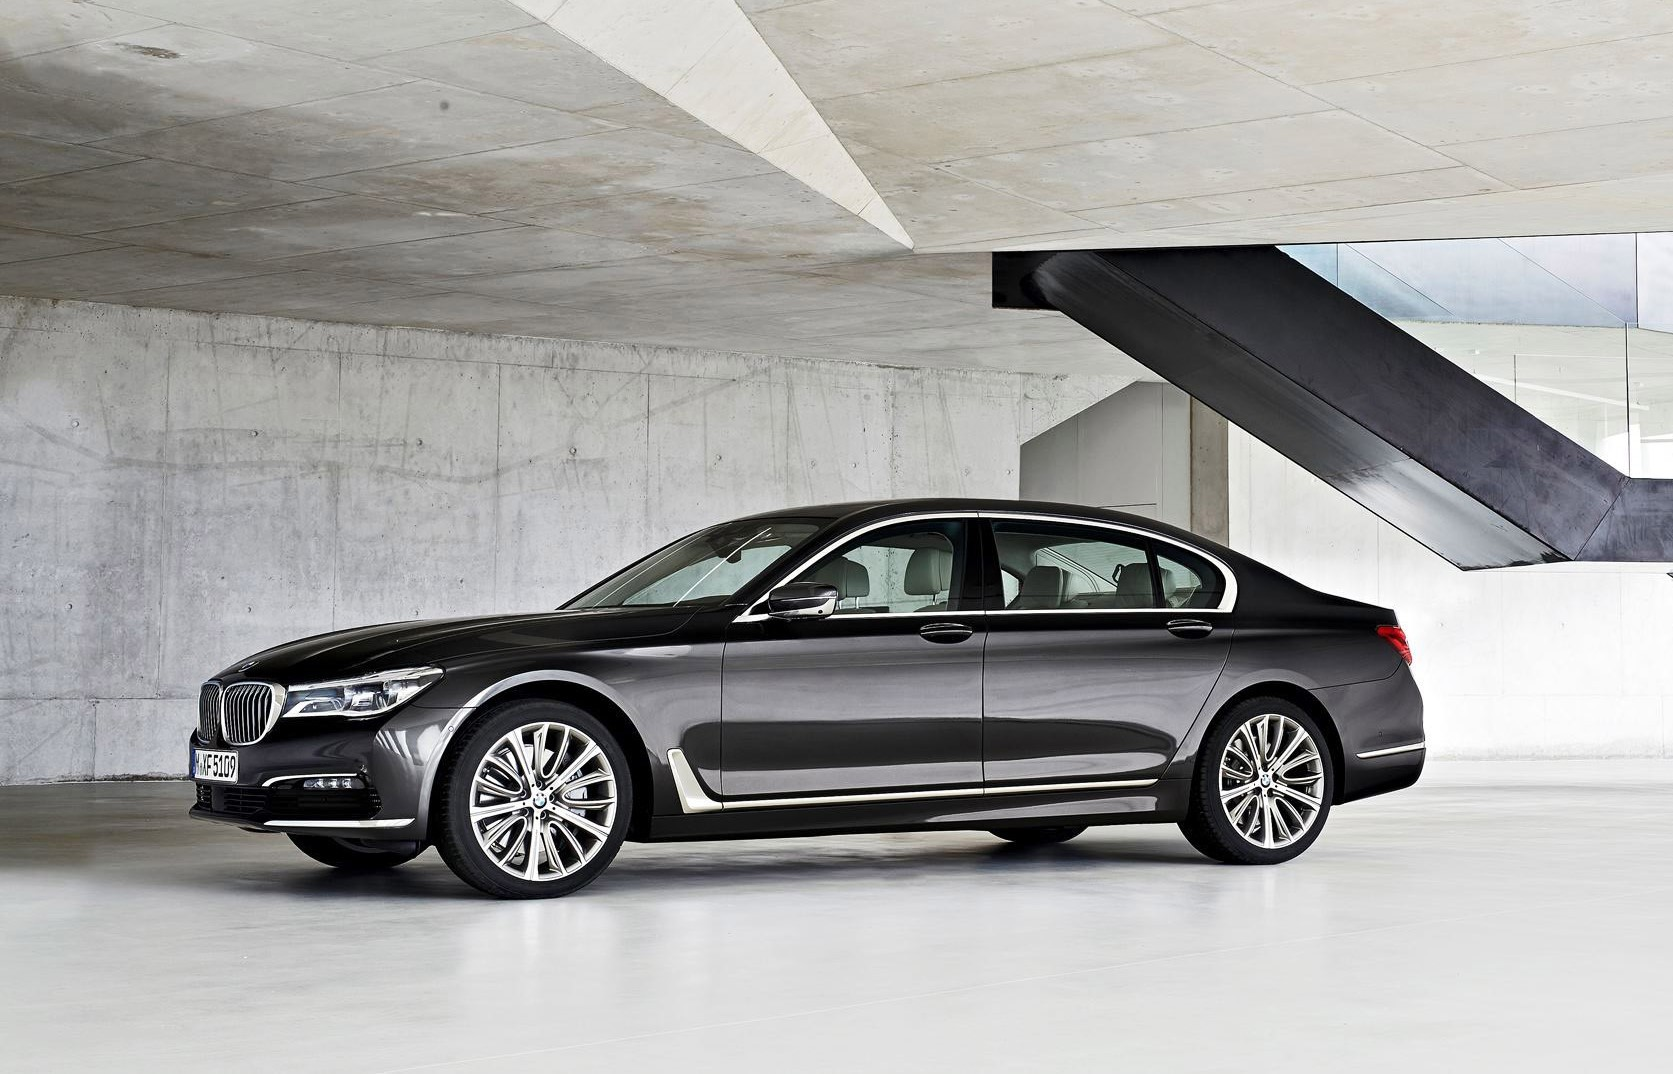 Bmw Exterior: 2016 BMW 750 Exterior Photos 21